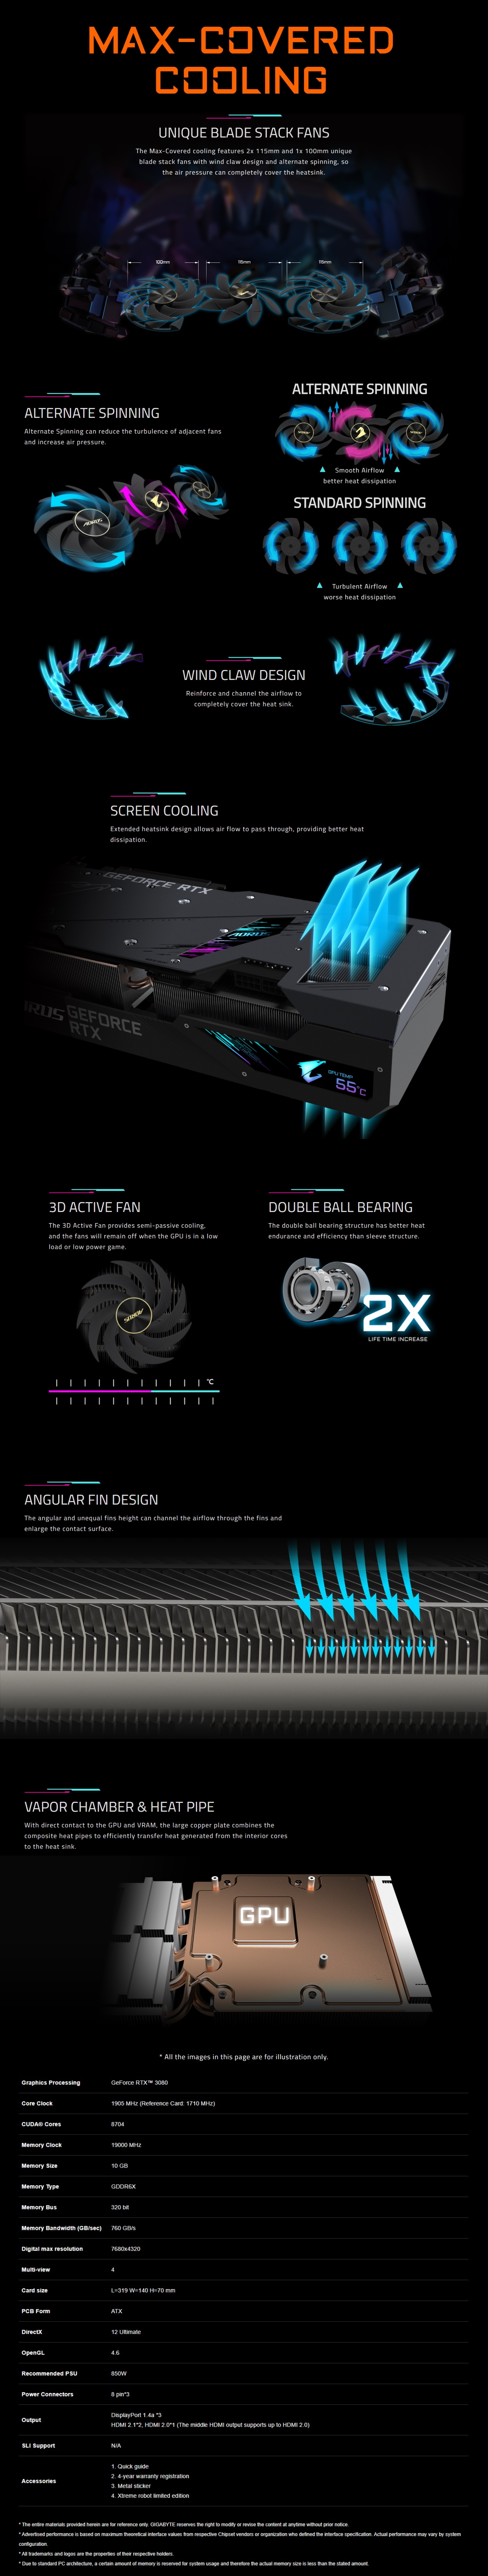 A large marketing image providing additional information about the product Gigabyte GeForce RTX 3080 Aorus Extreme 10GB GDDR6X - Additional alt info not provided